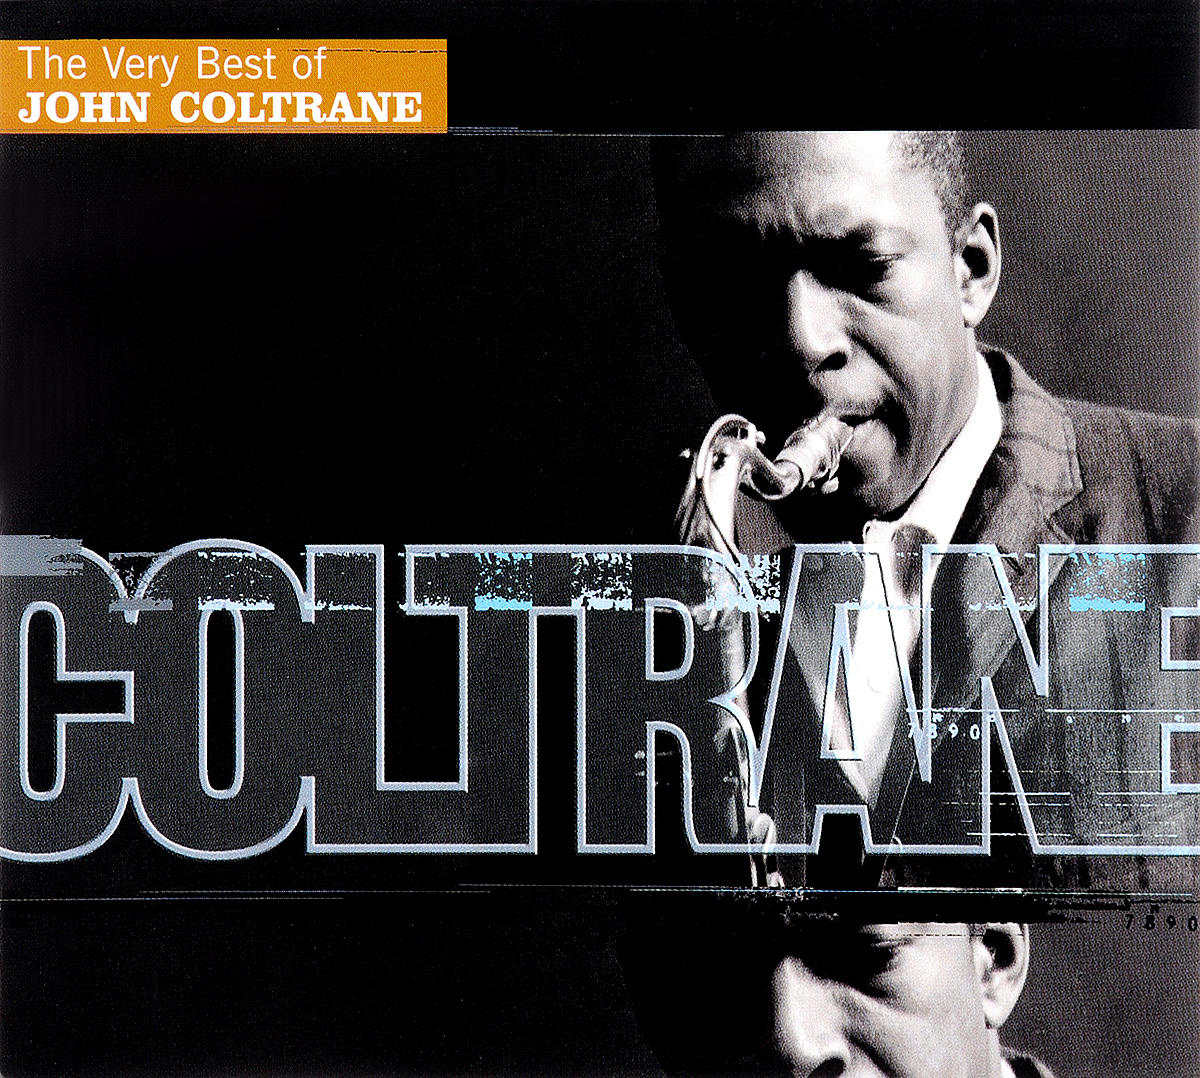 John Coltrane. The Very Best Of John Coltrane